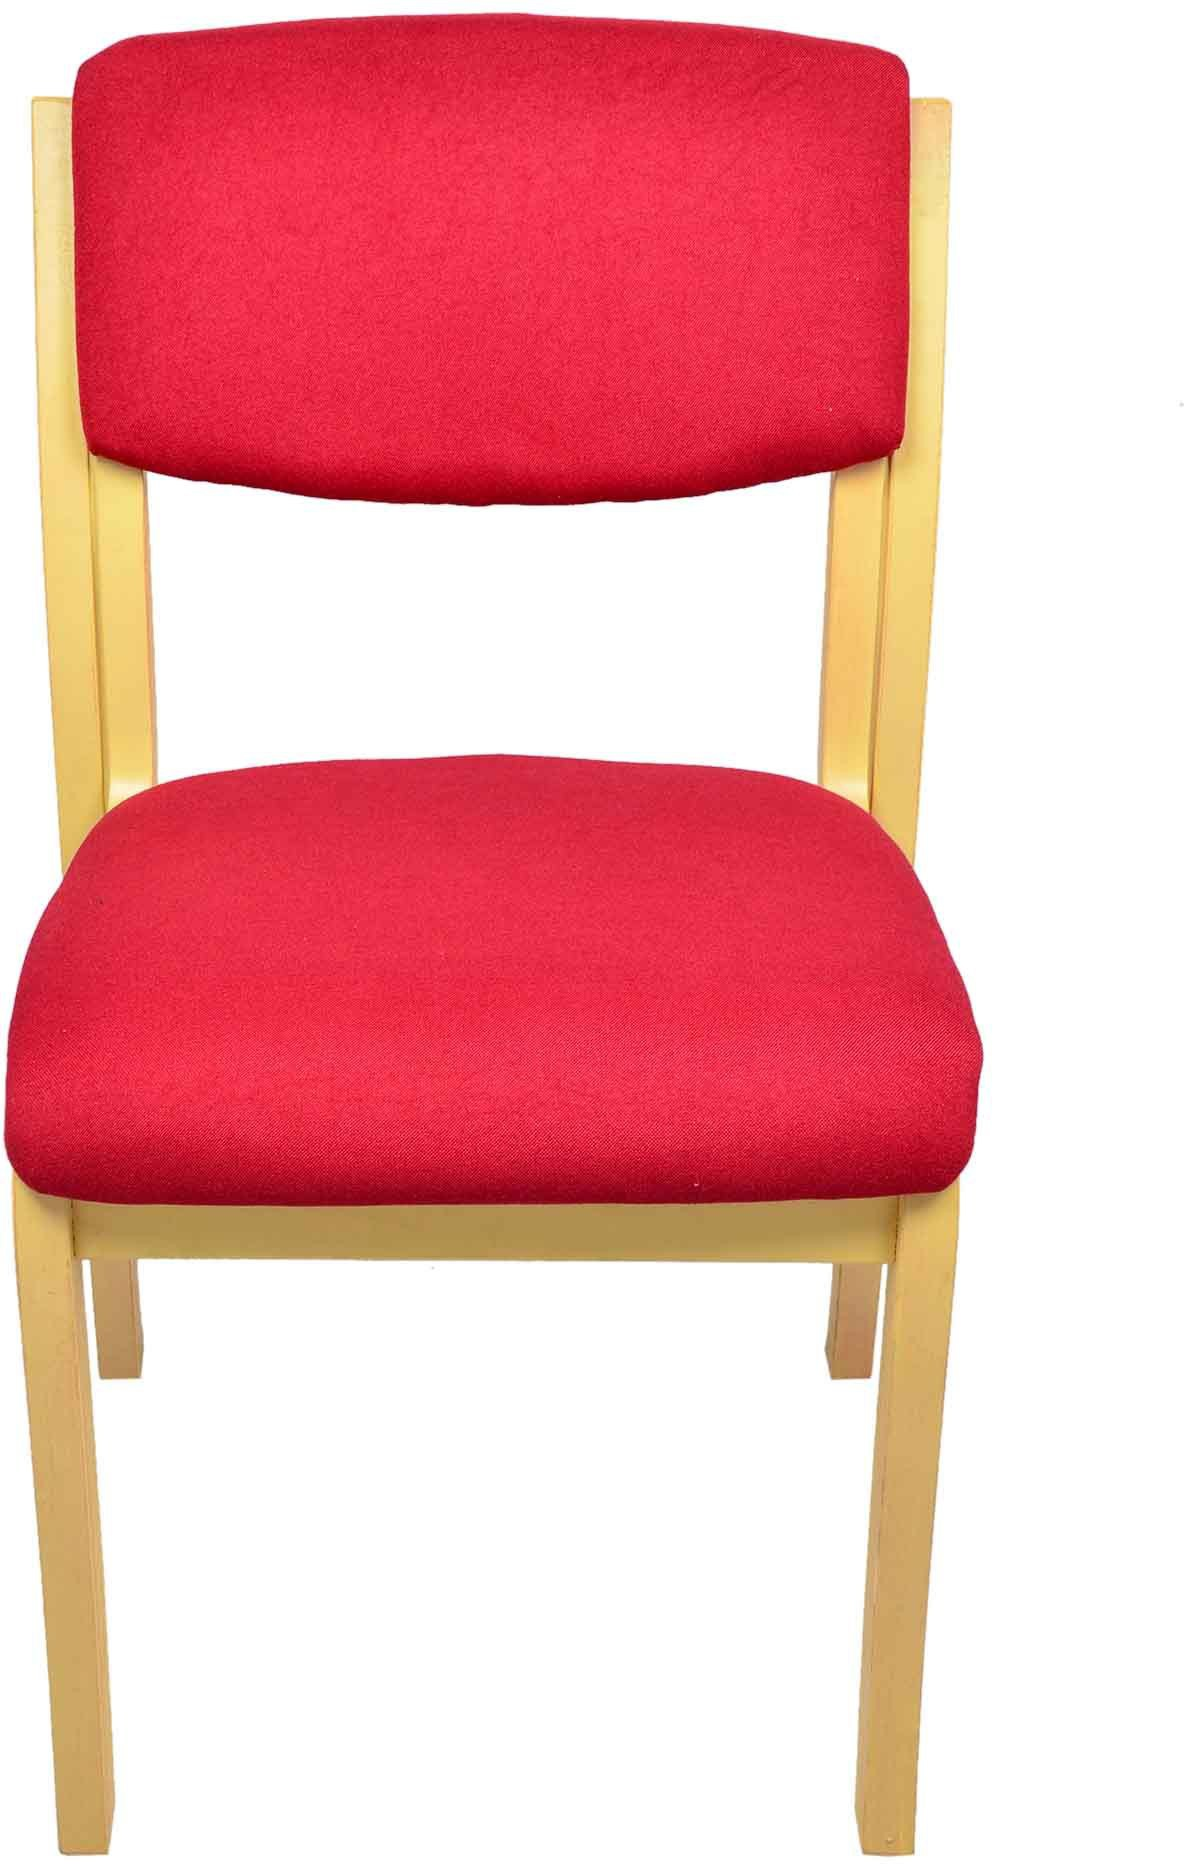 View Darla Interiors Solid Wood Office Chair(Red) Furniture (Darla Interiors)